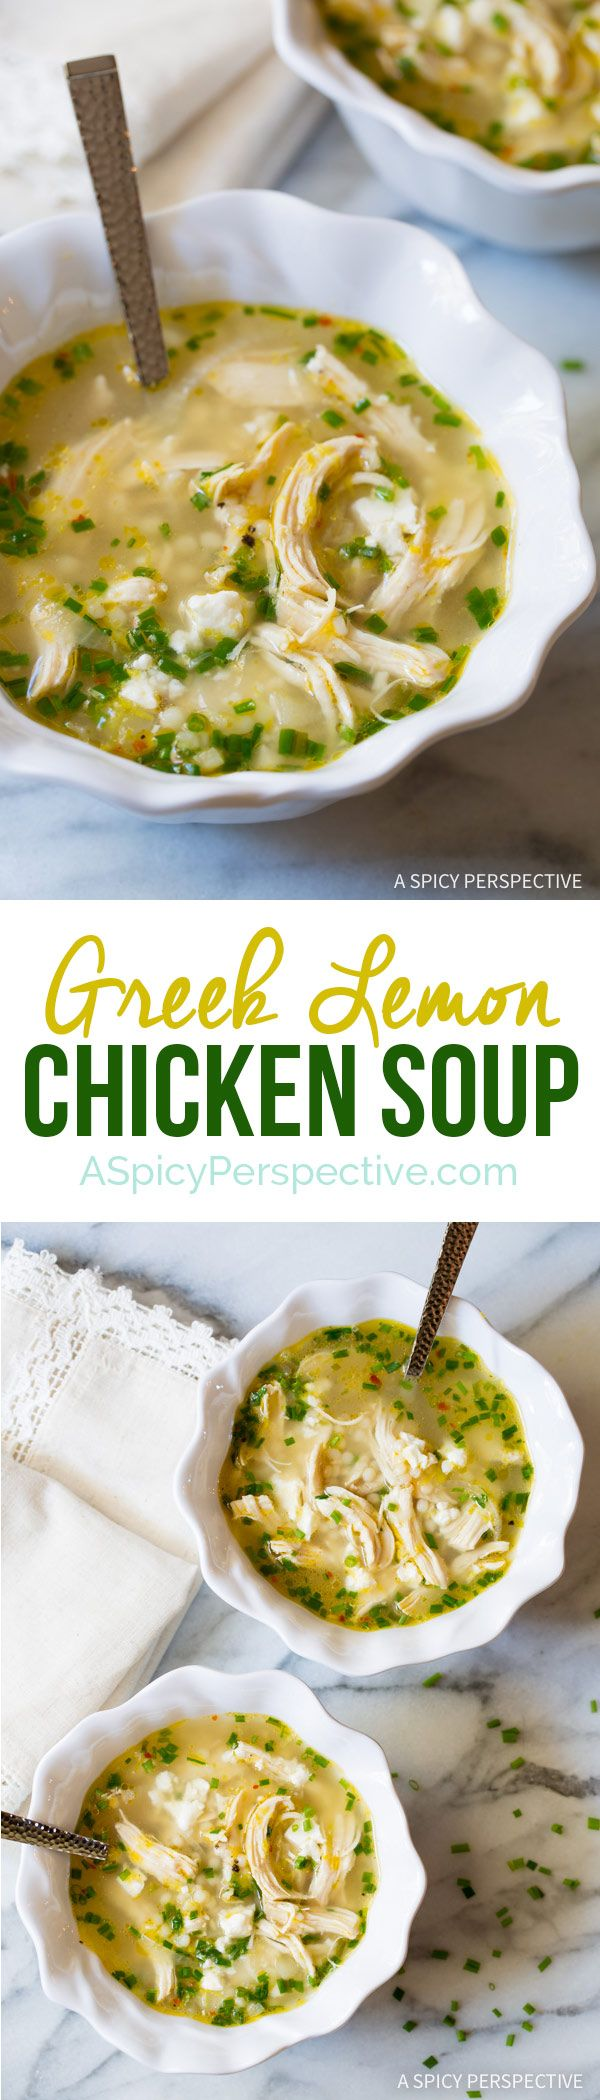 Minus the couscous ... Just crazy over this Healthy Greek Lemon Chicken Soup Recipe on ASpicyPerspective.com